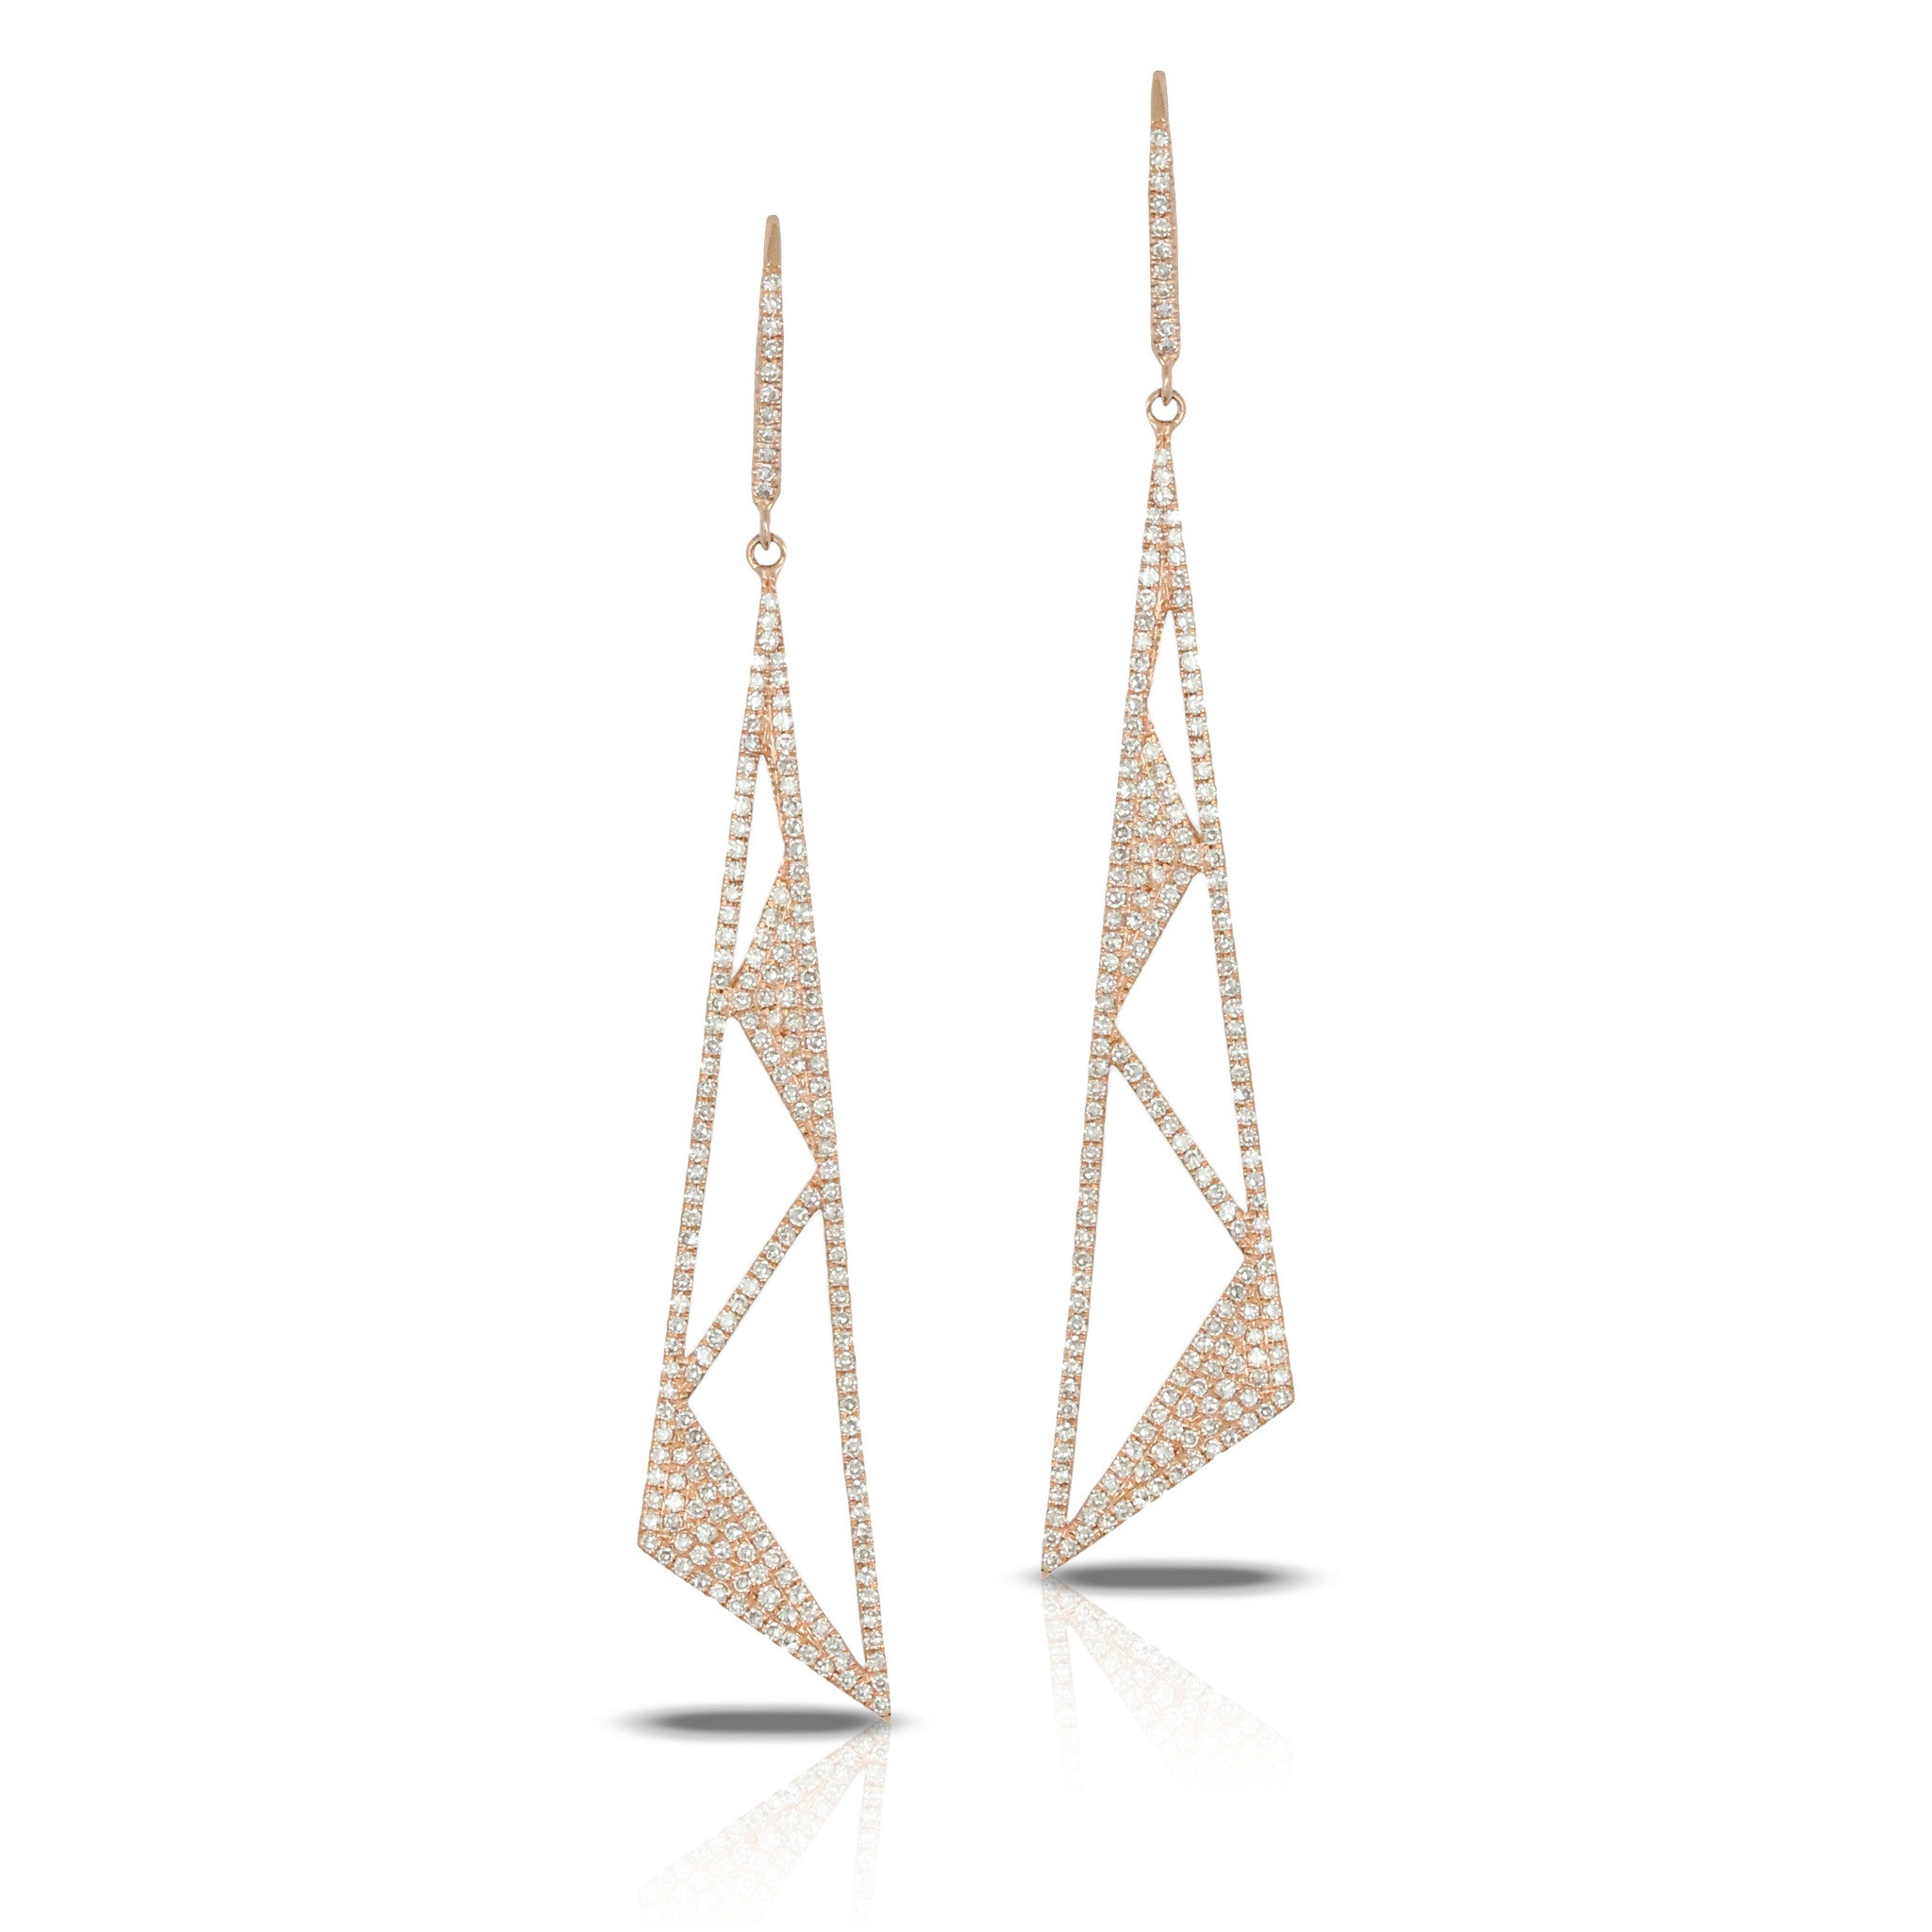 Doves 18k Rose Gold Diamond Art Deco Drop Earrings by Jewelry Designer Doron Paloma